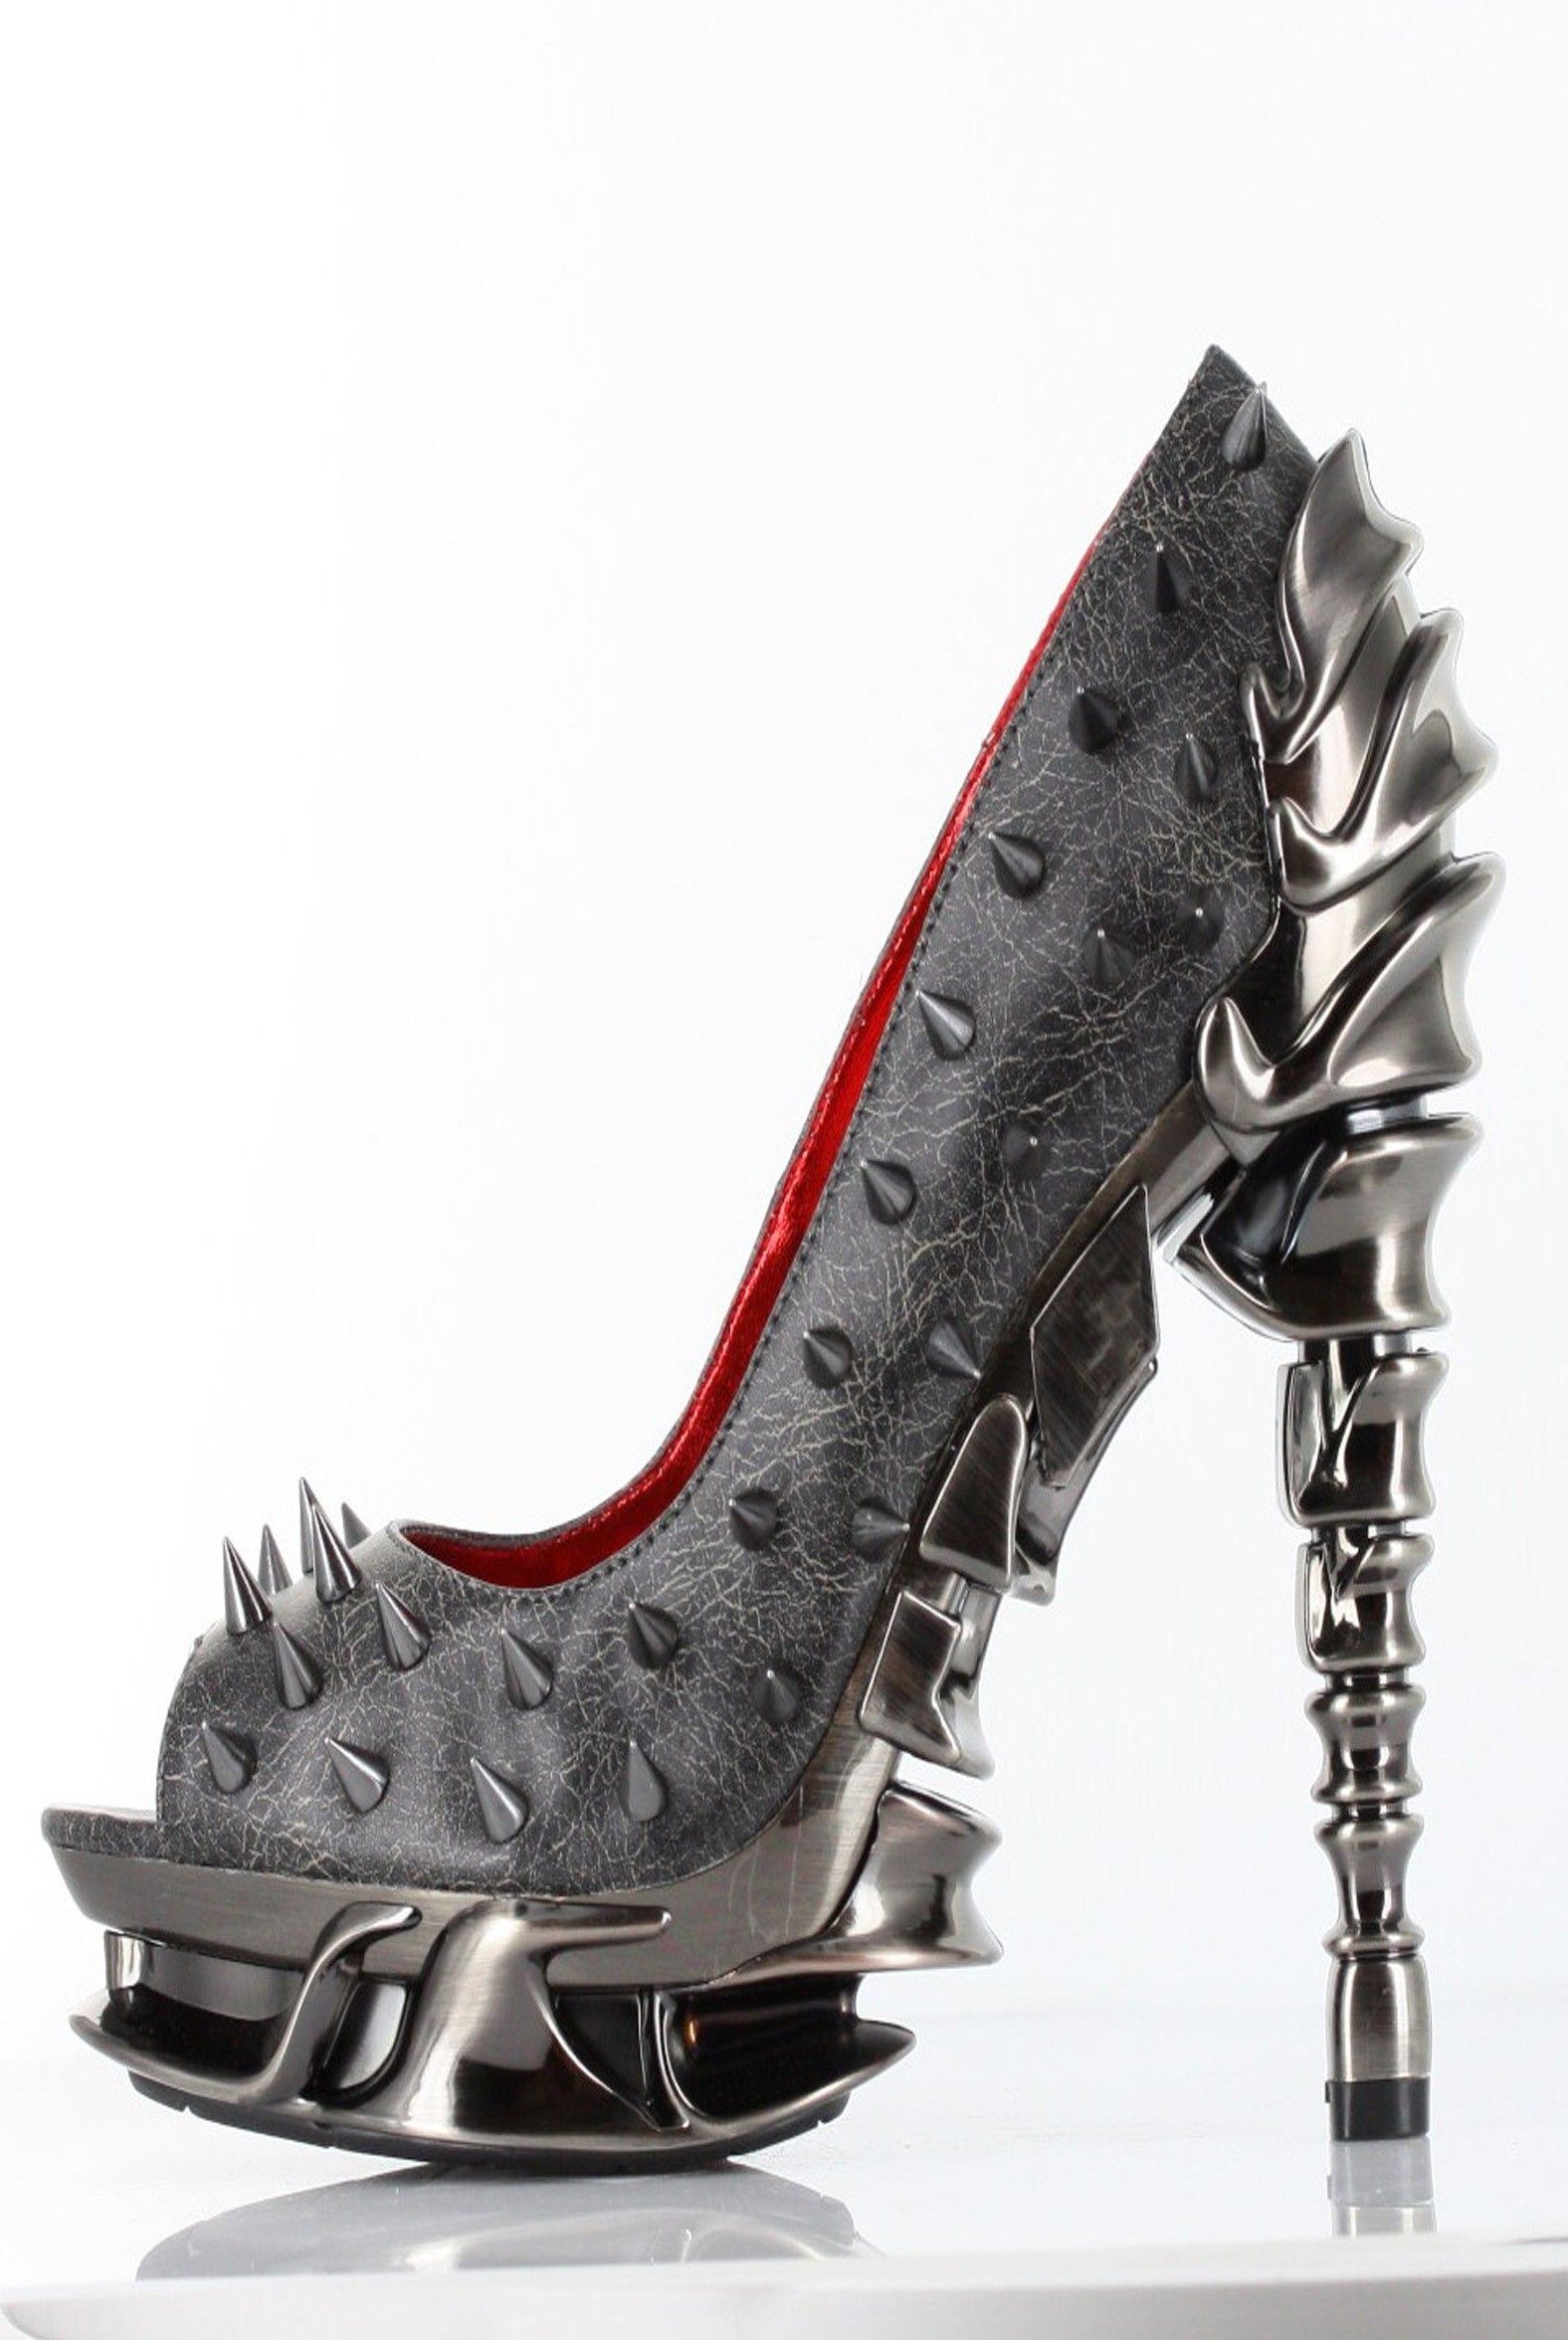 0f2a259c951 Hades Shoes - Talon - Pewter - Goth Metal Cyber Steam Spike Heel ...